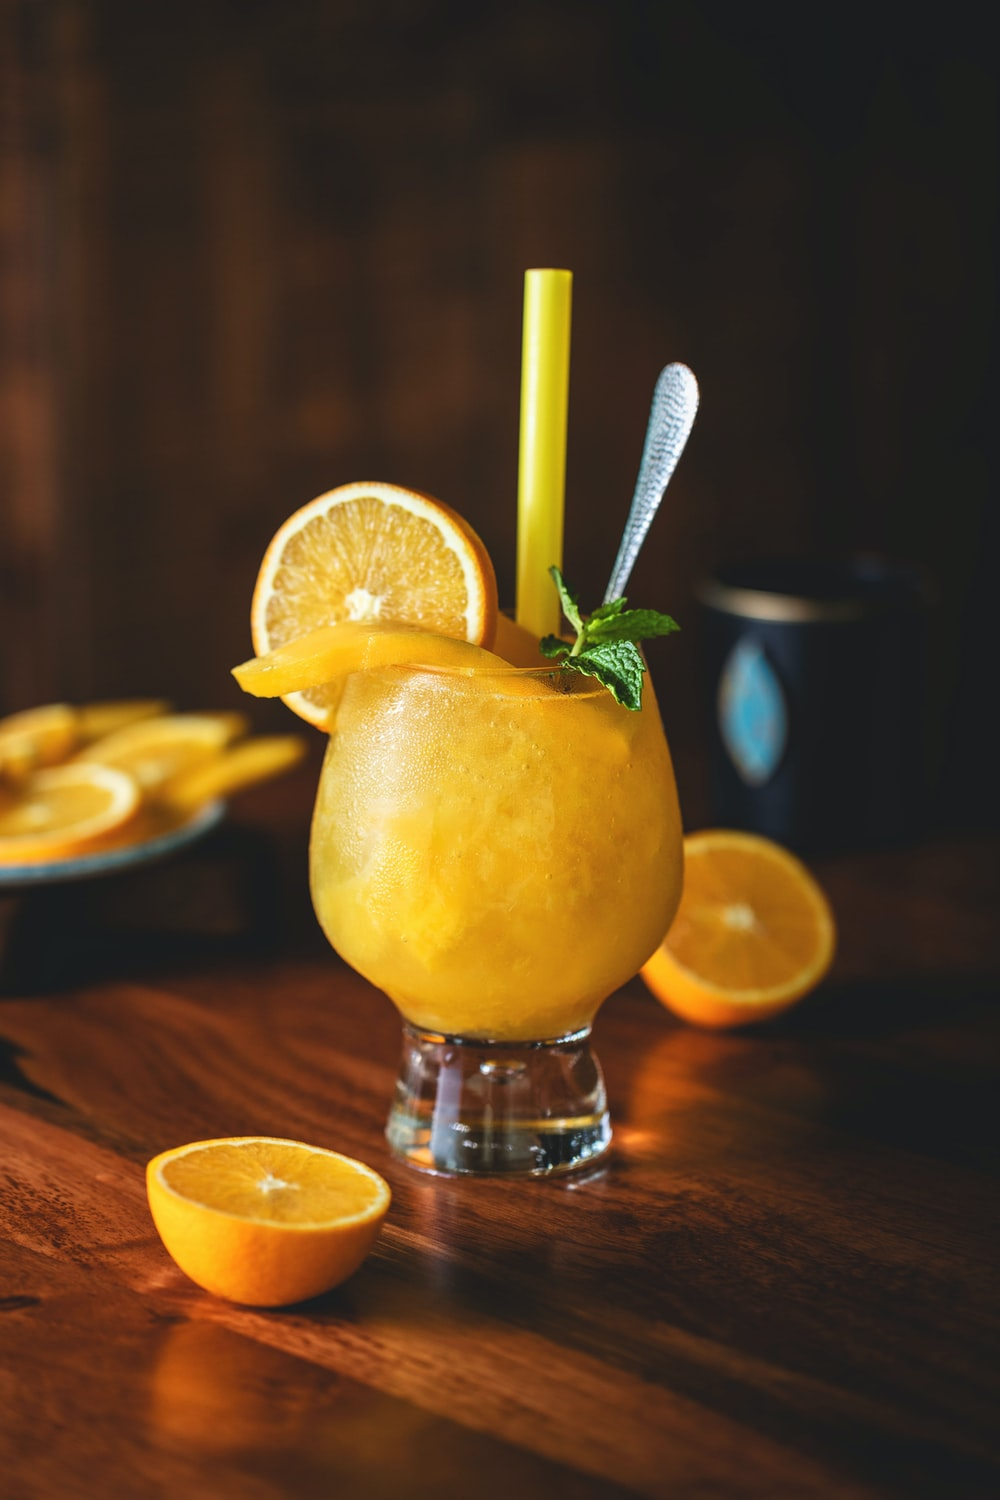 citrus juice in clear glass